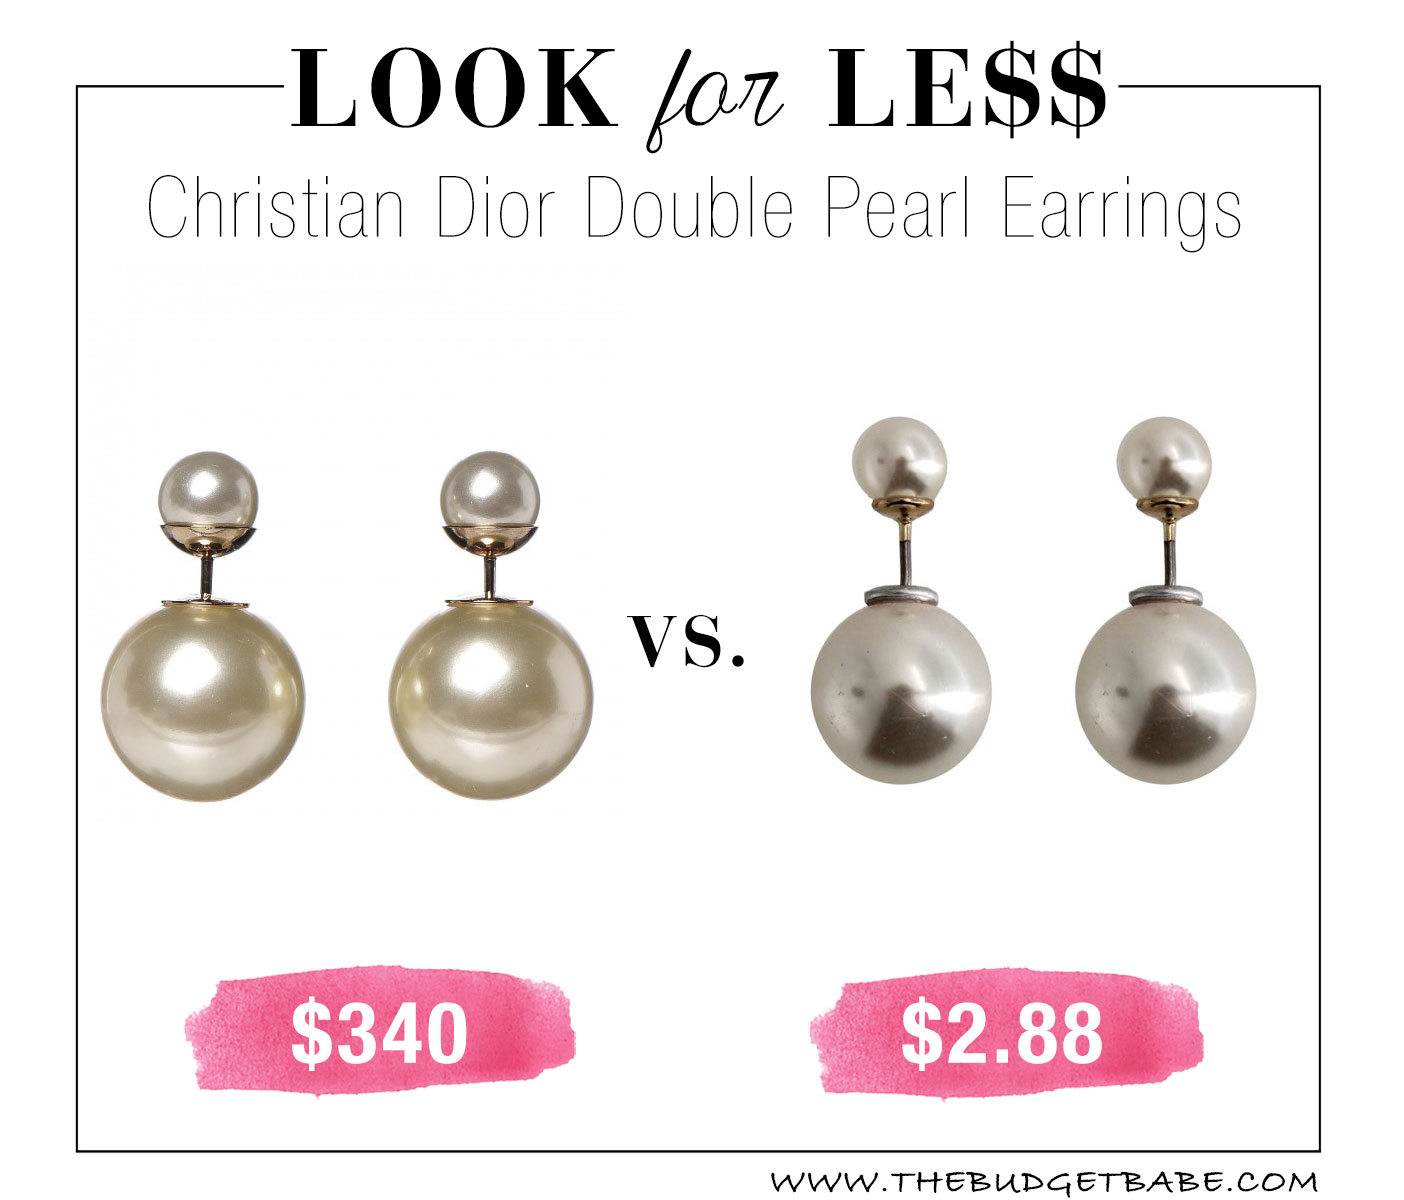 Christian Dior pearl earring knockoffs at Walmart! I'll grab a pair for $2.88!